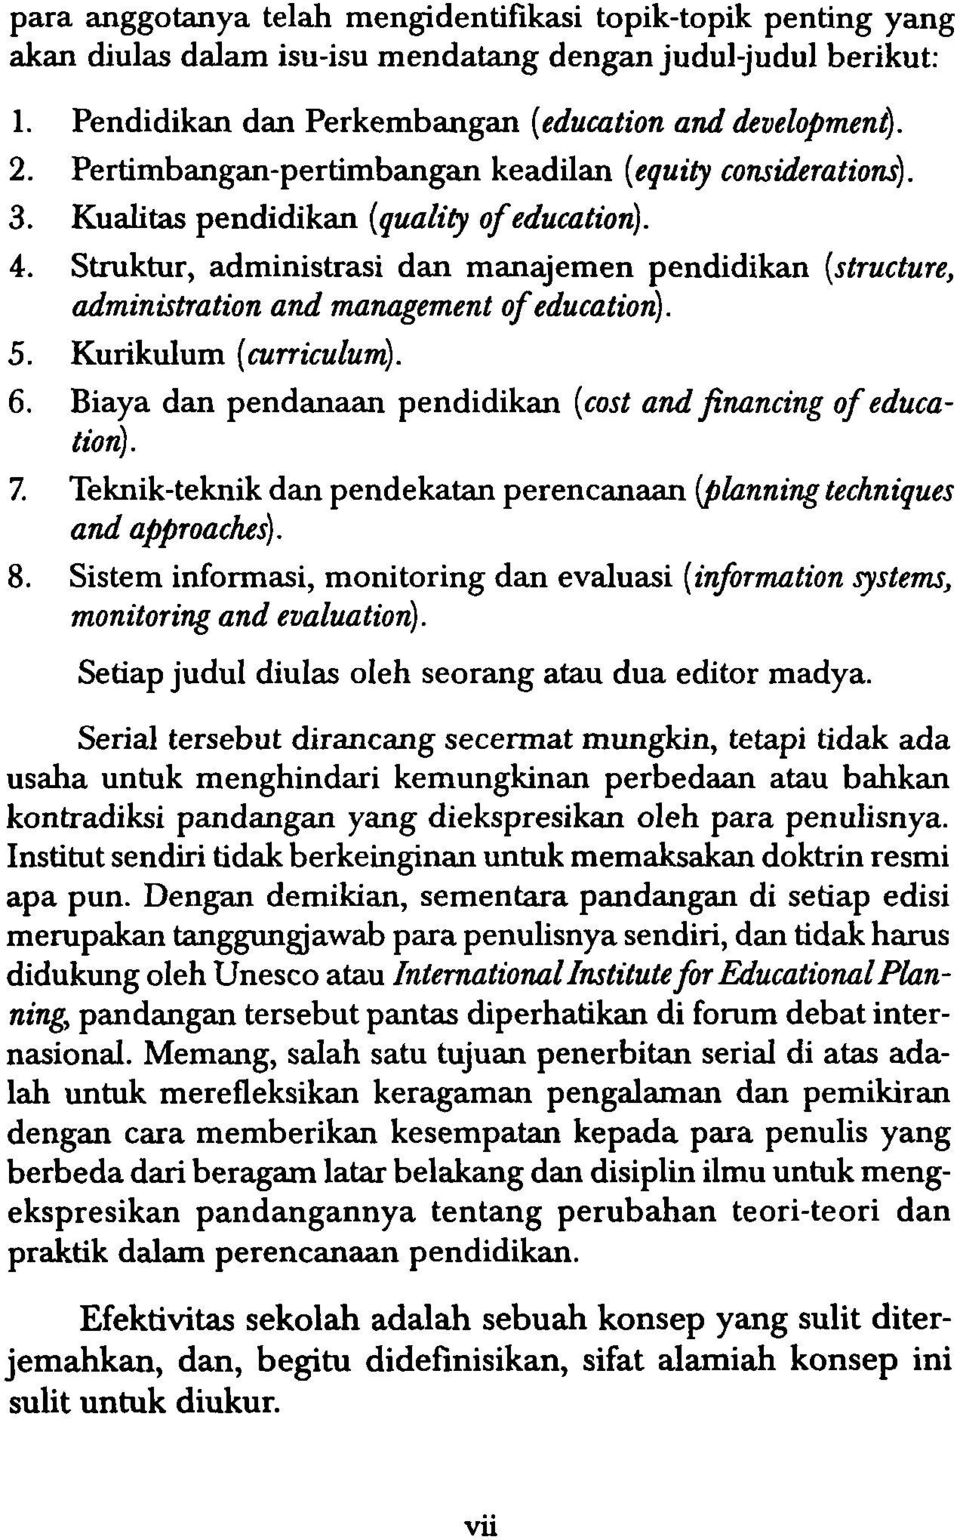 Struktur, administrasi dan manajemen pendidikan (structure, administration and management of education). 5. Kurikulum (curriculum). 6. Biaya dan pendanaan pendidikan (cost and financing of education).